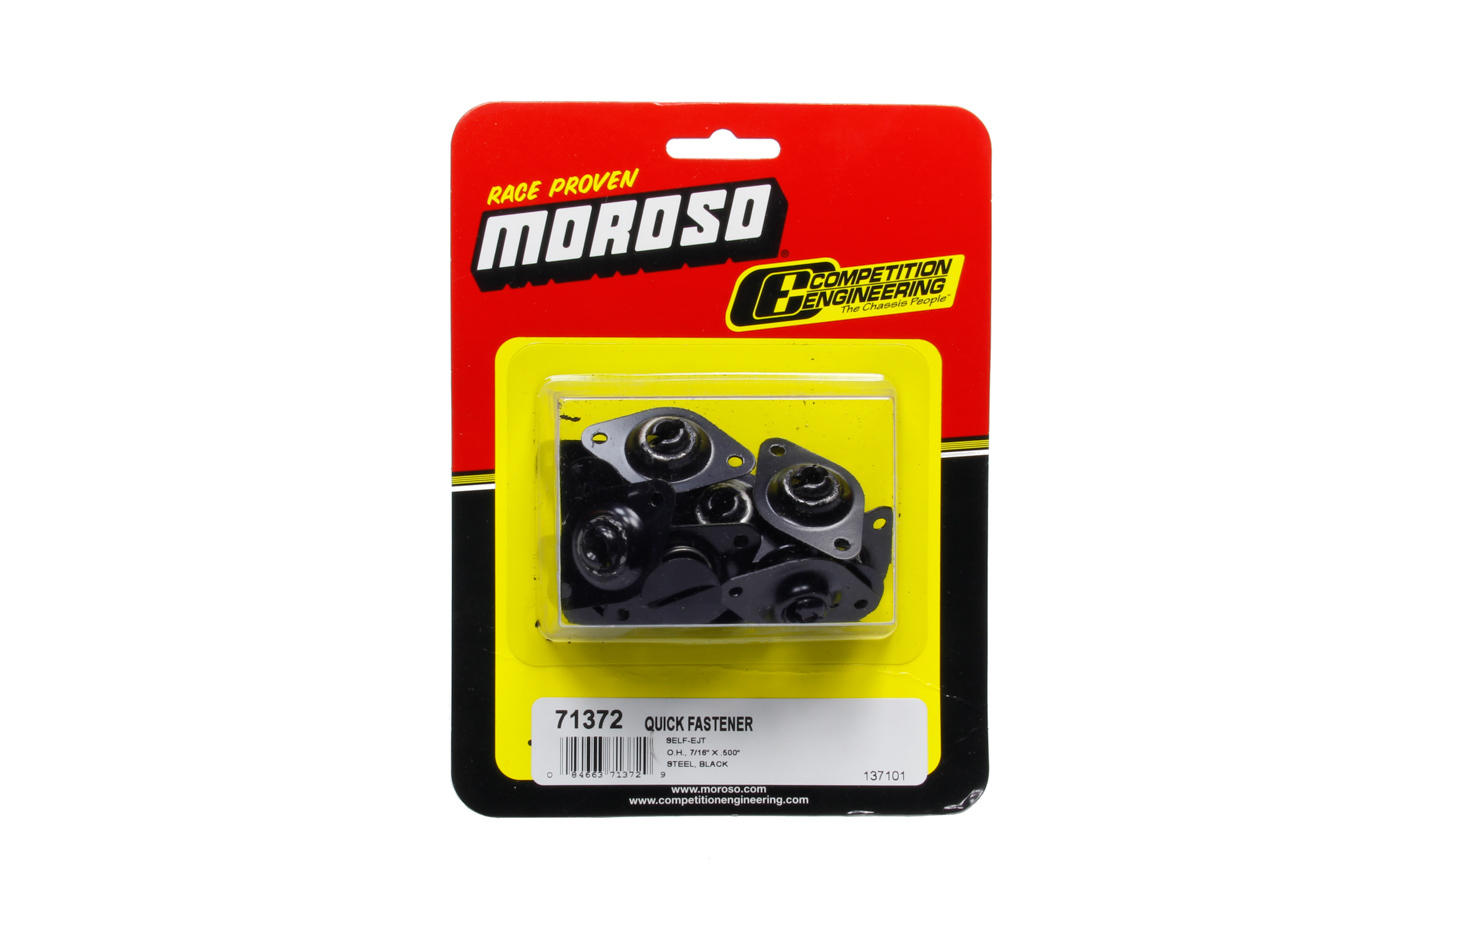 Moroso 71372 Quick Turn Fastener, Self Ejecting, Flush Head, Slotted, 7/16 x 0.500 in Body, Steel, Black, Set of 10